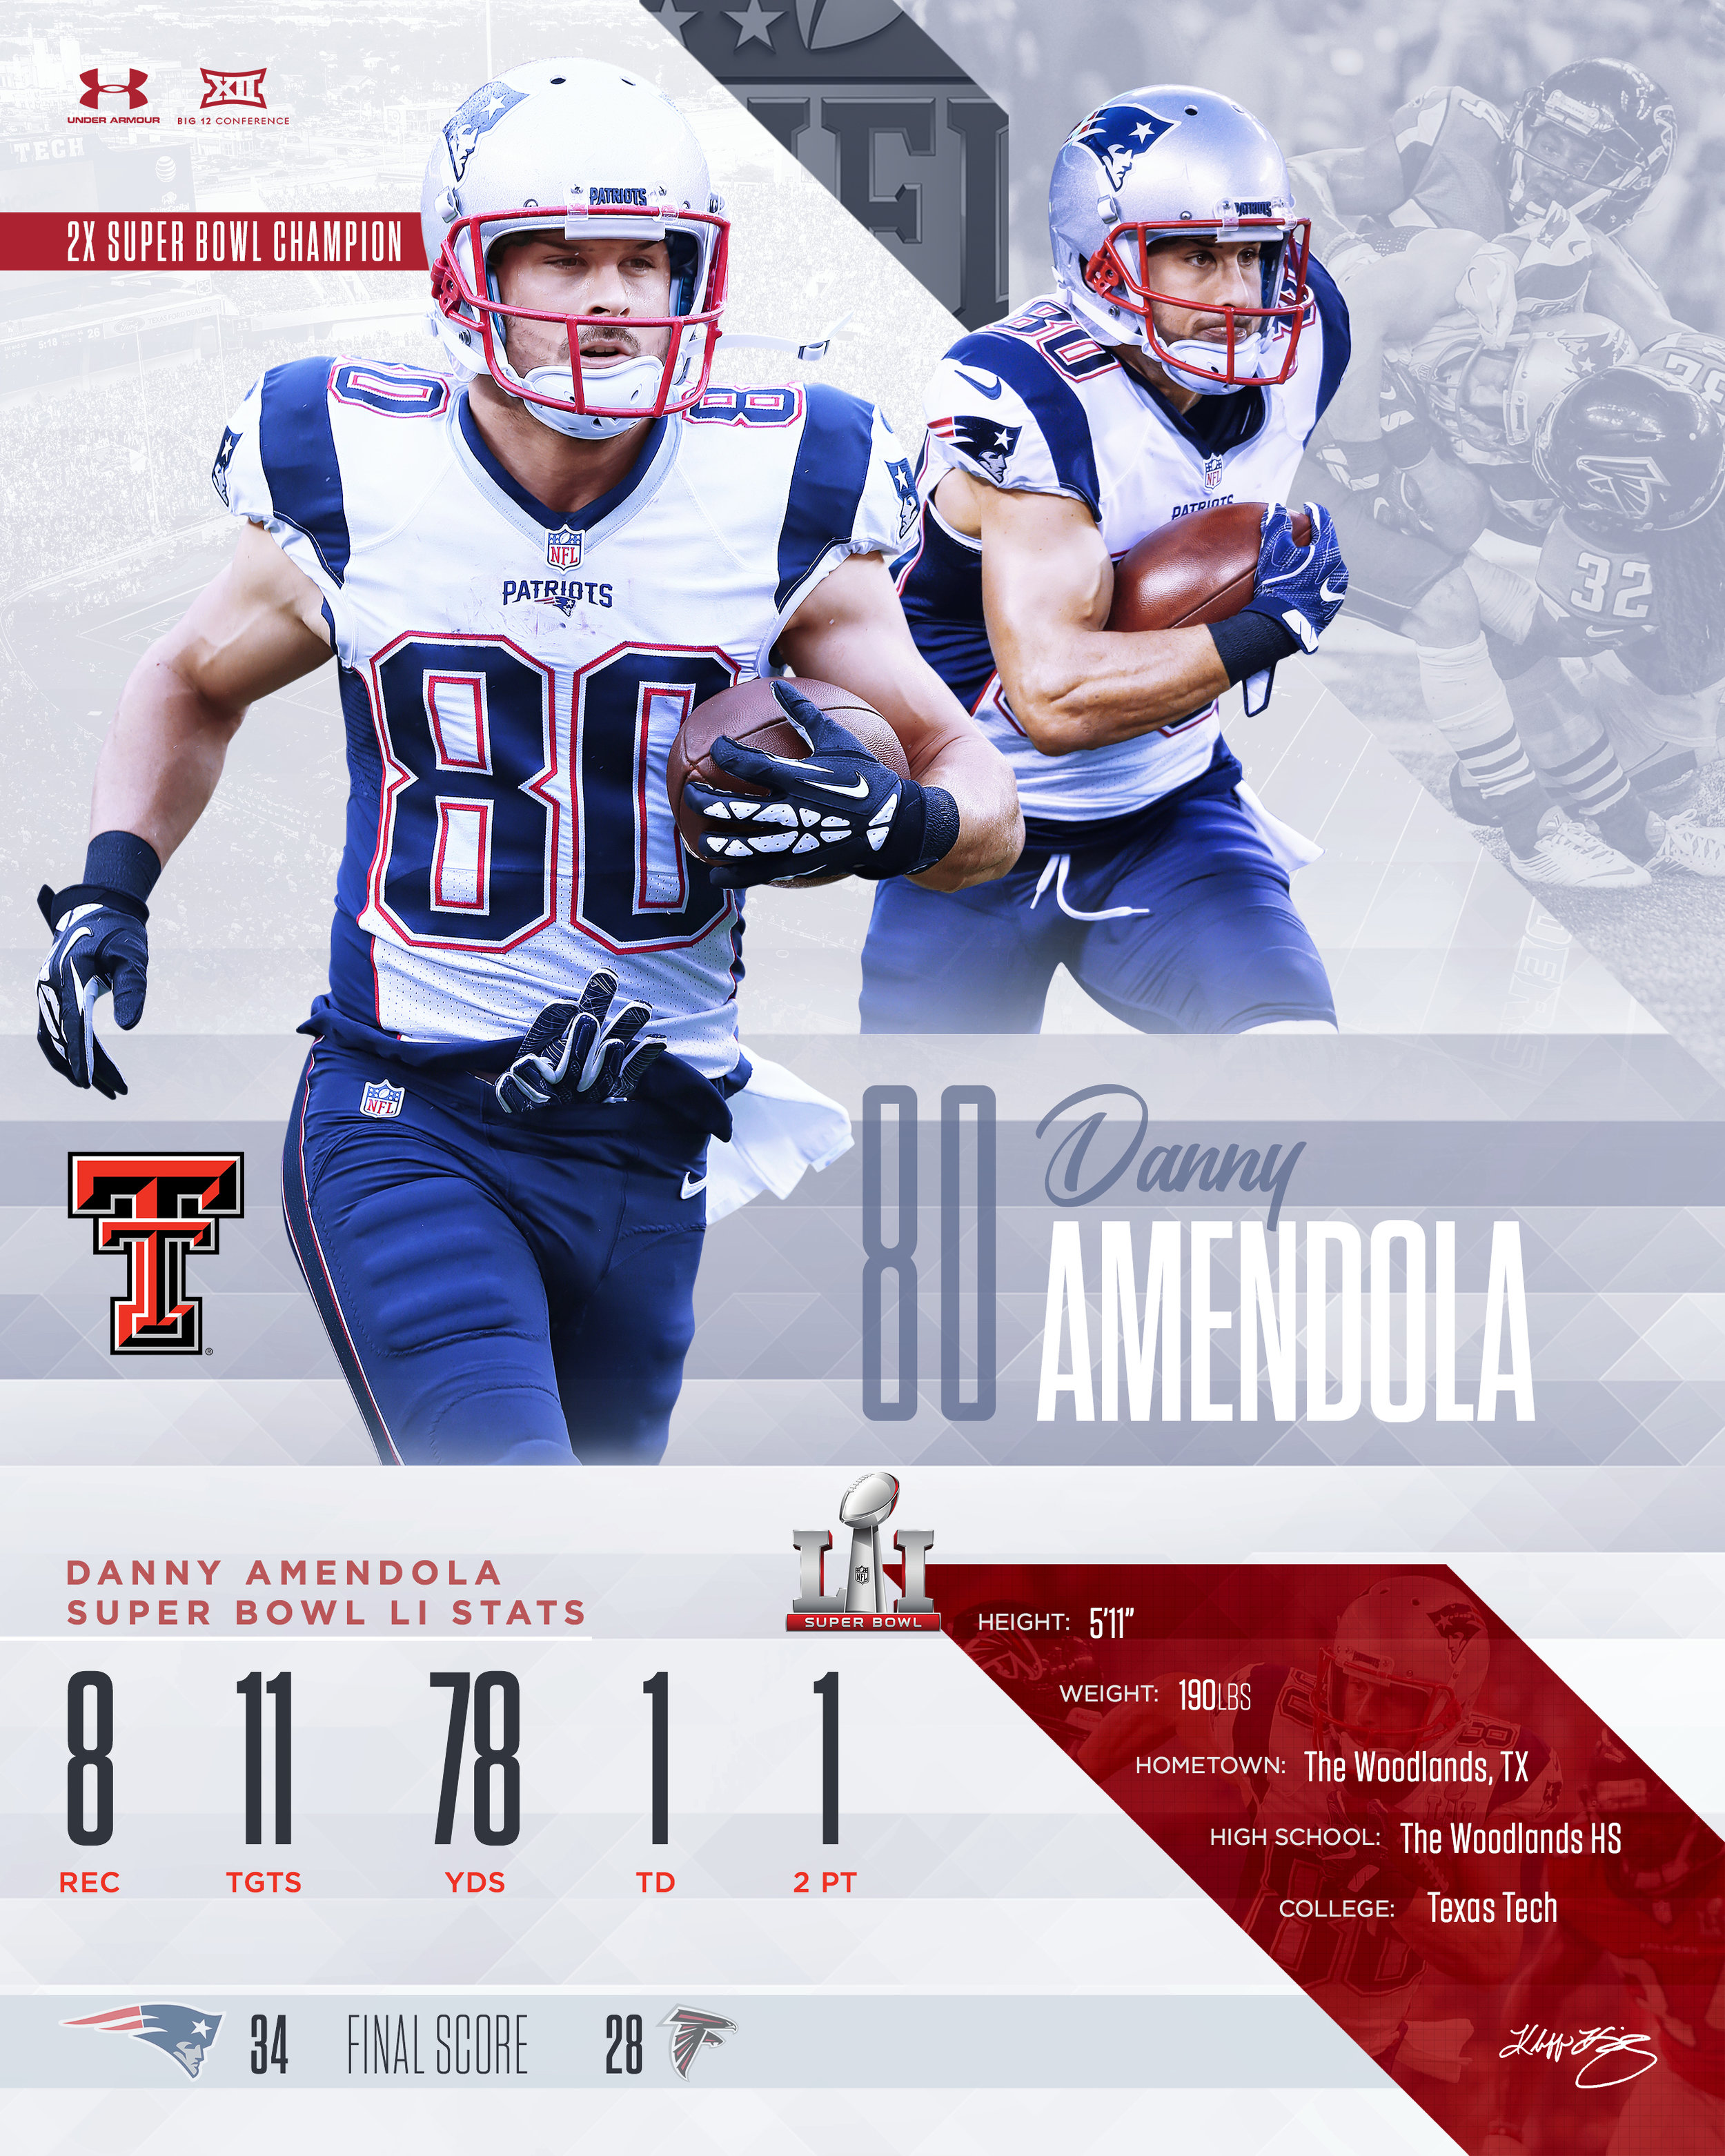 TTU Danny Amendola Super Bowl 51 Infographic